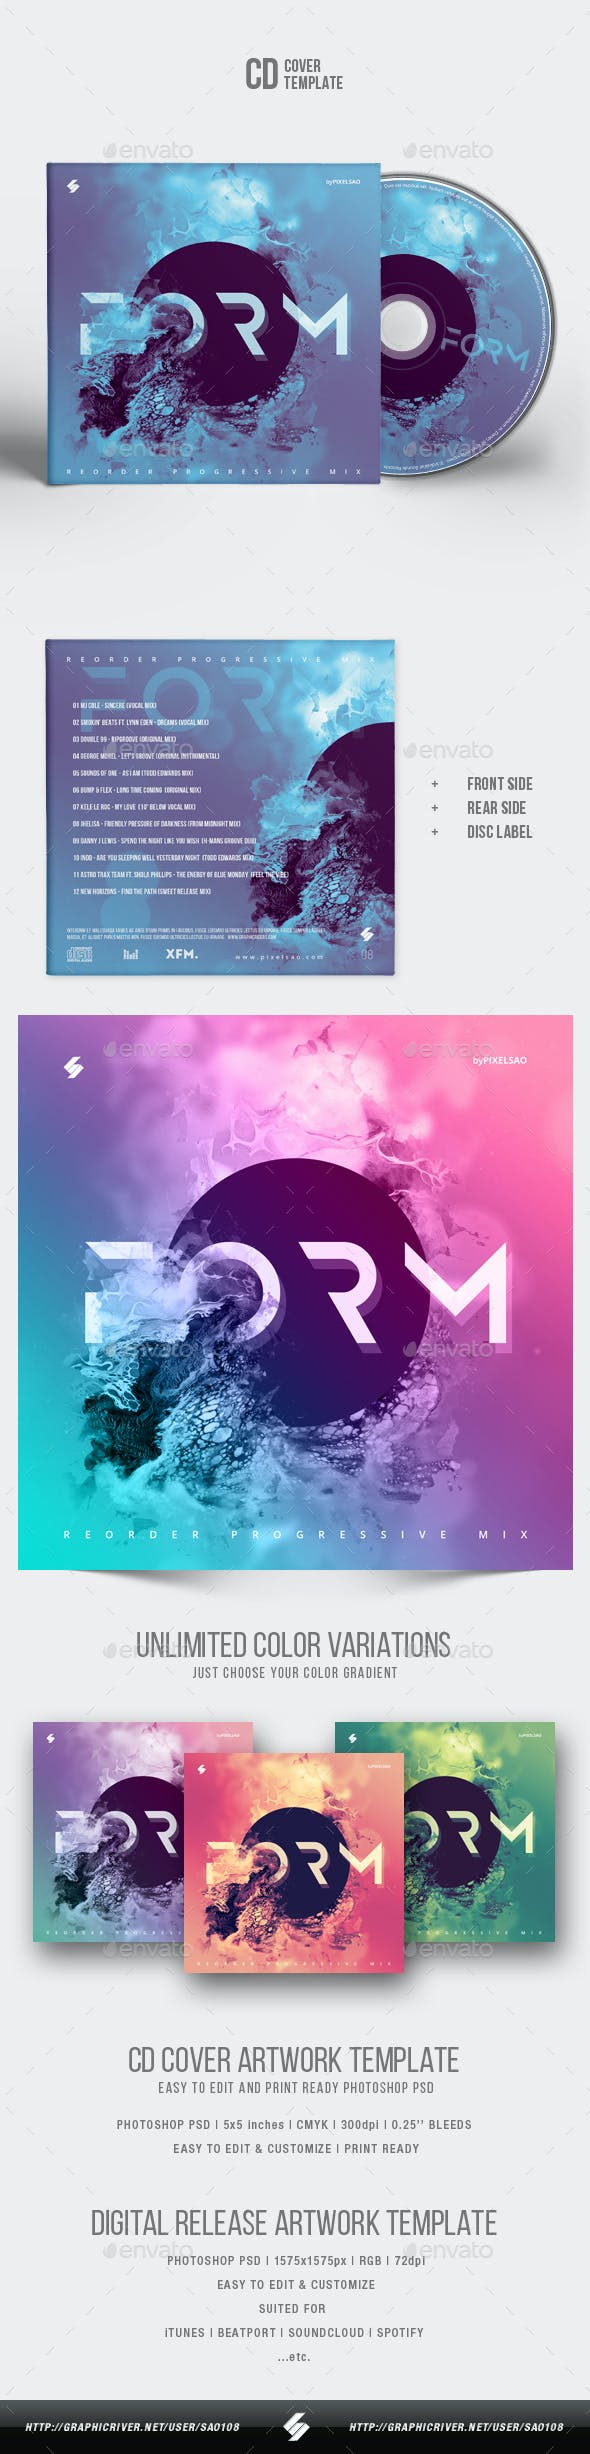 Form - Abstract CD Cover Artwork Template